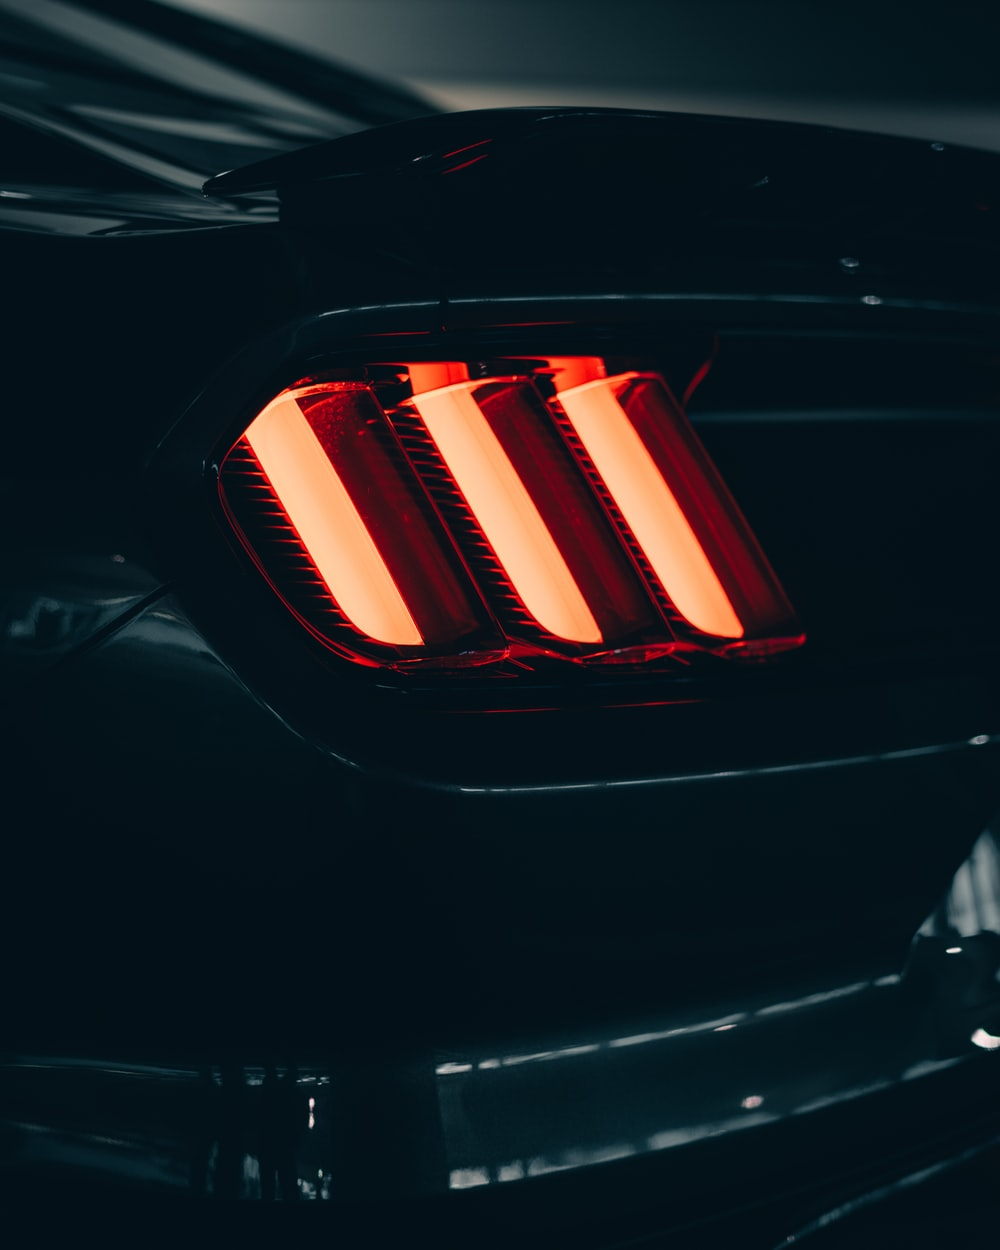 black and red car tail light